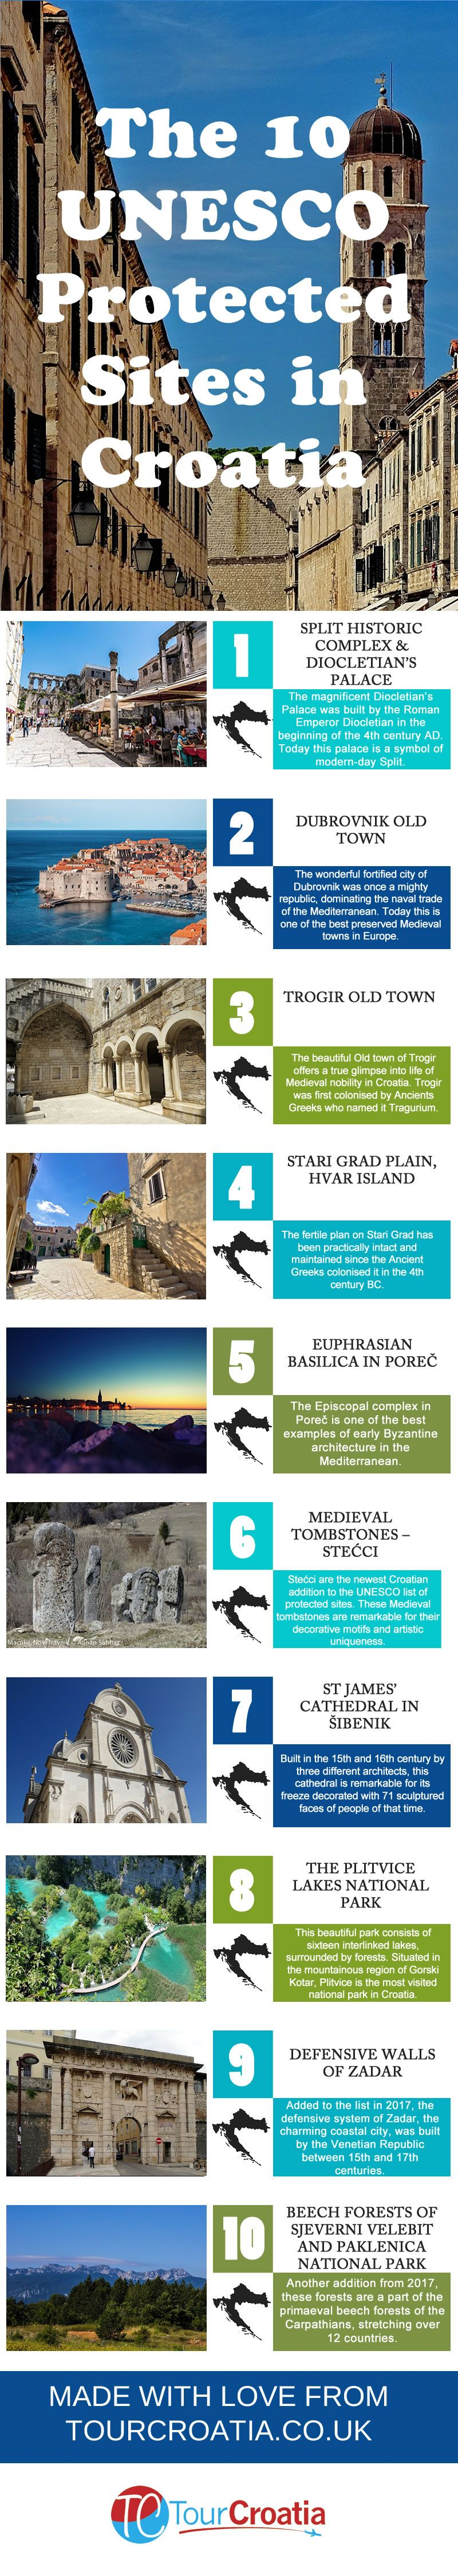 The 10 UNESCO Protected Sites in Croatia [Infographic]